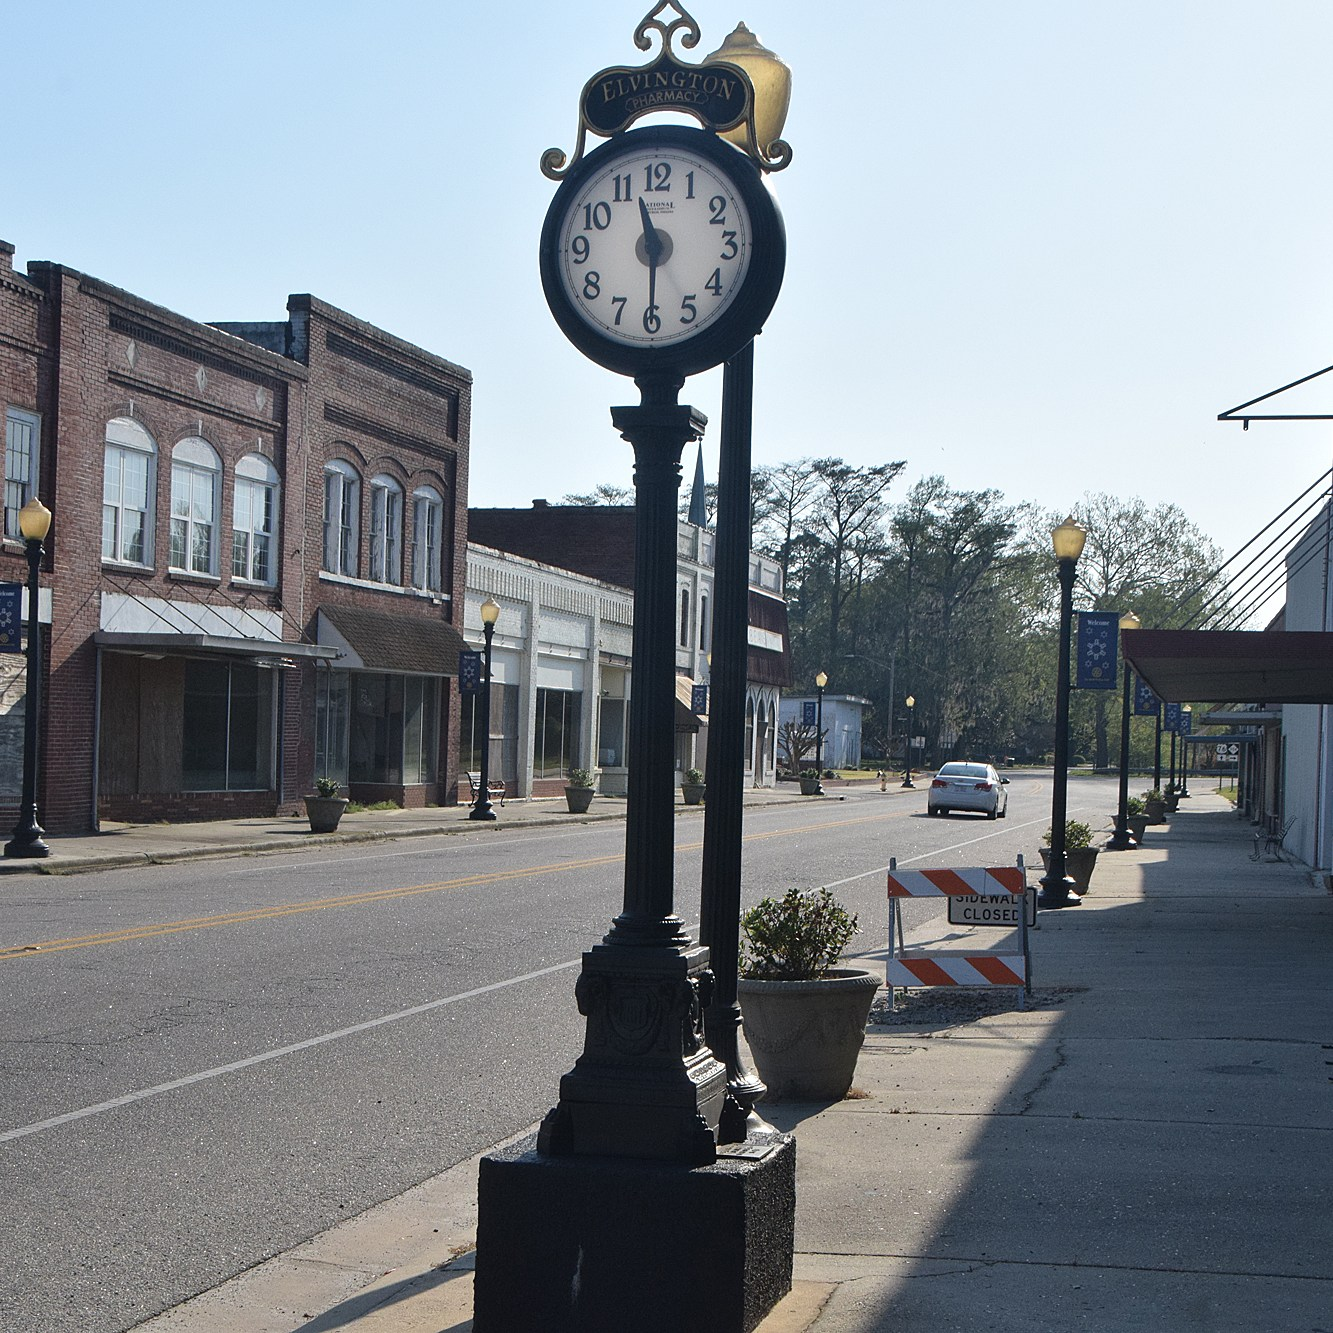 The town clock in abandoned downtown Fair Bluff